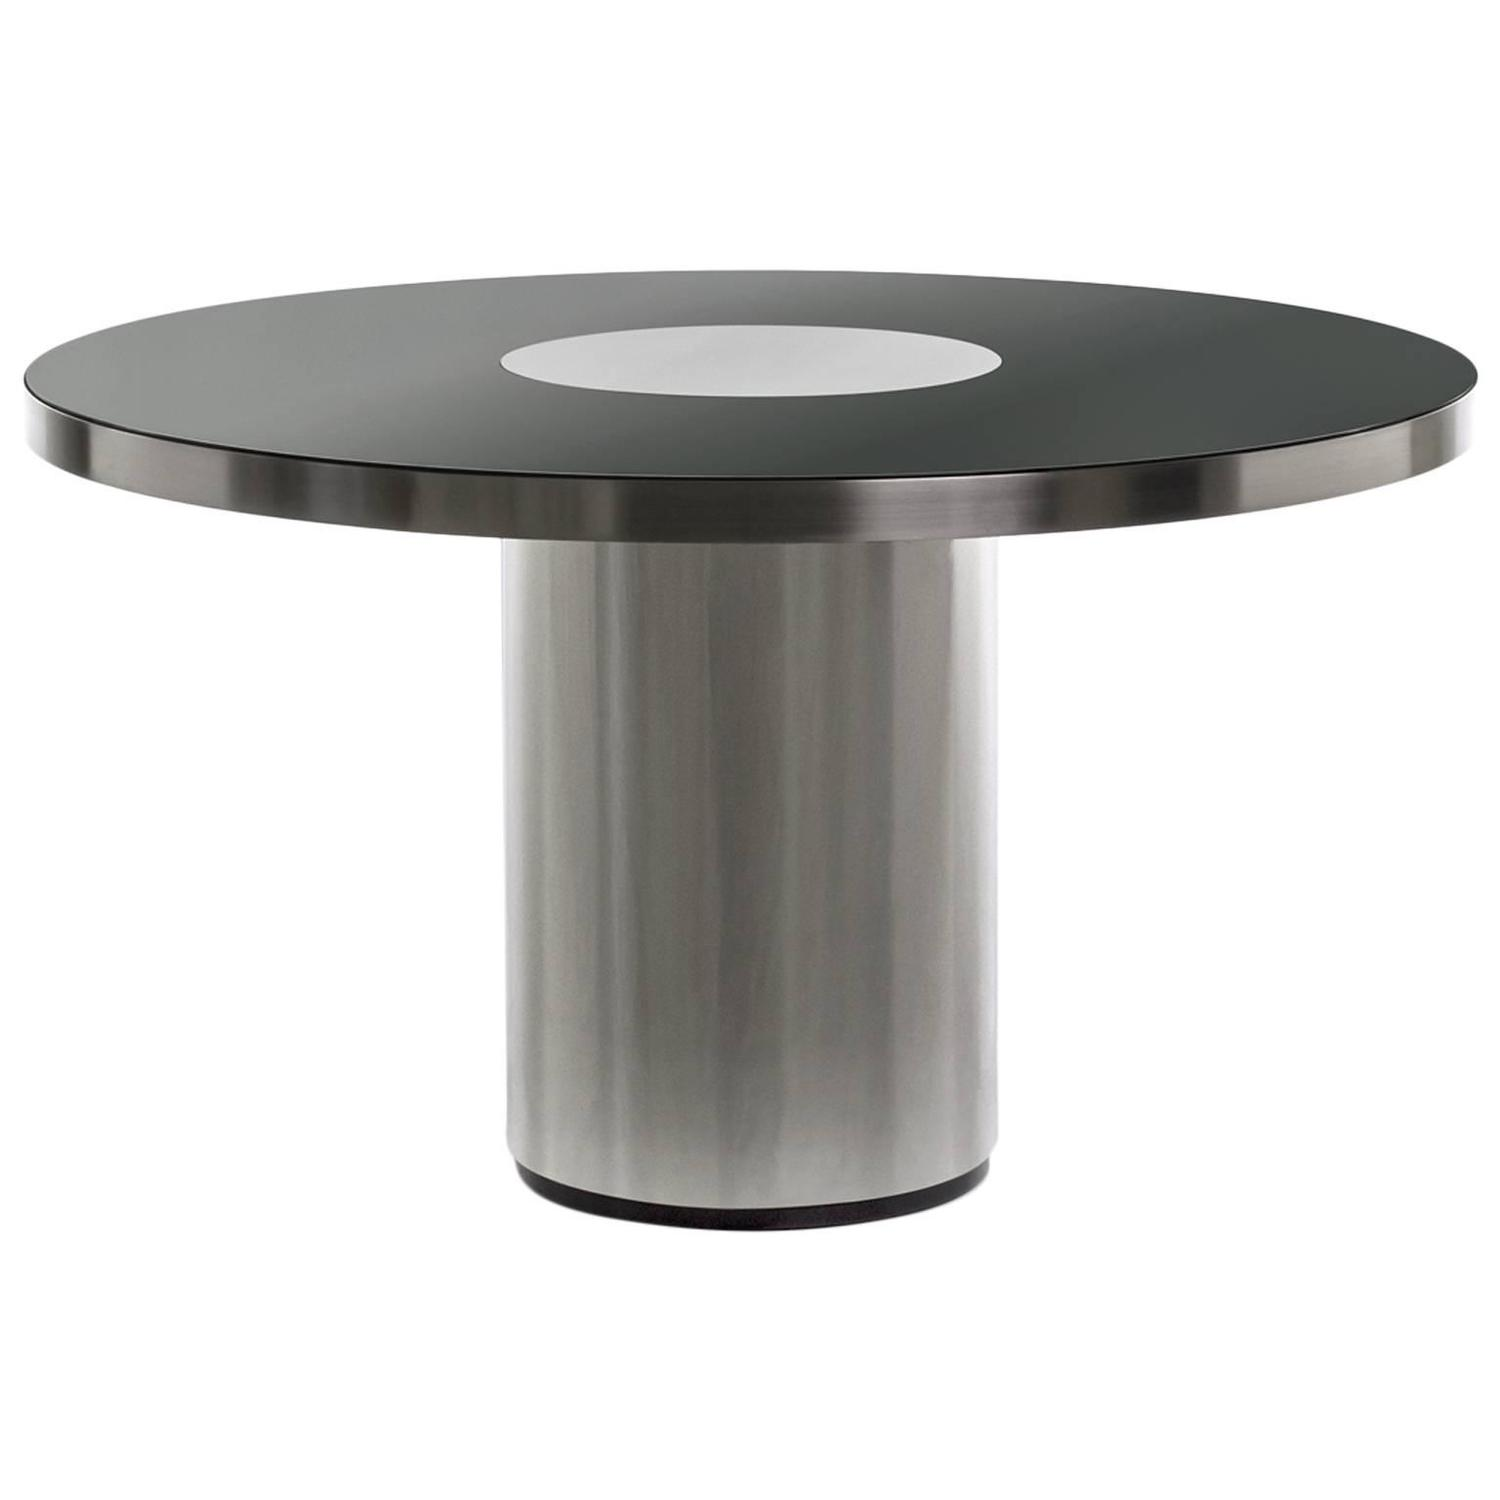 Round Black Mirrored Dining Table In The Style Of Willy Rizzo For Sale